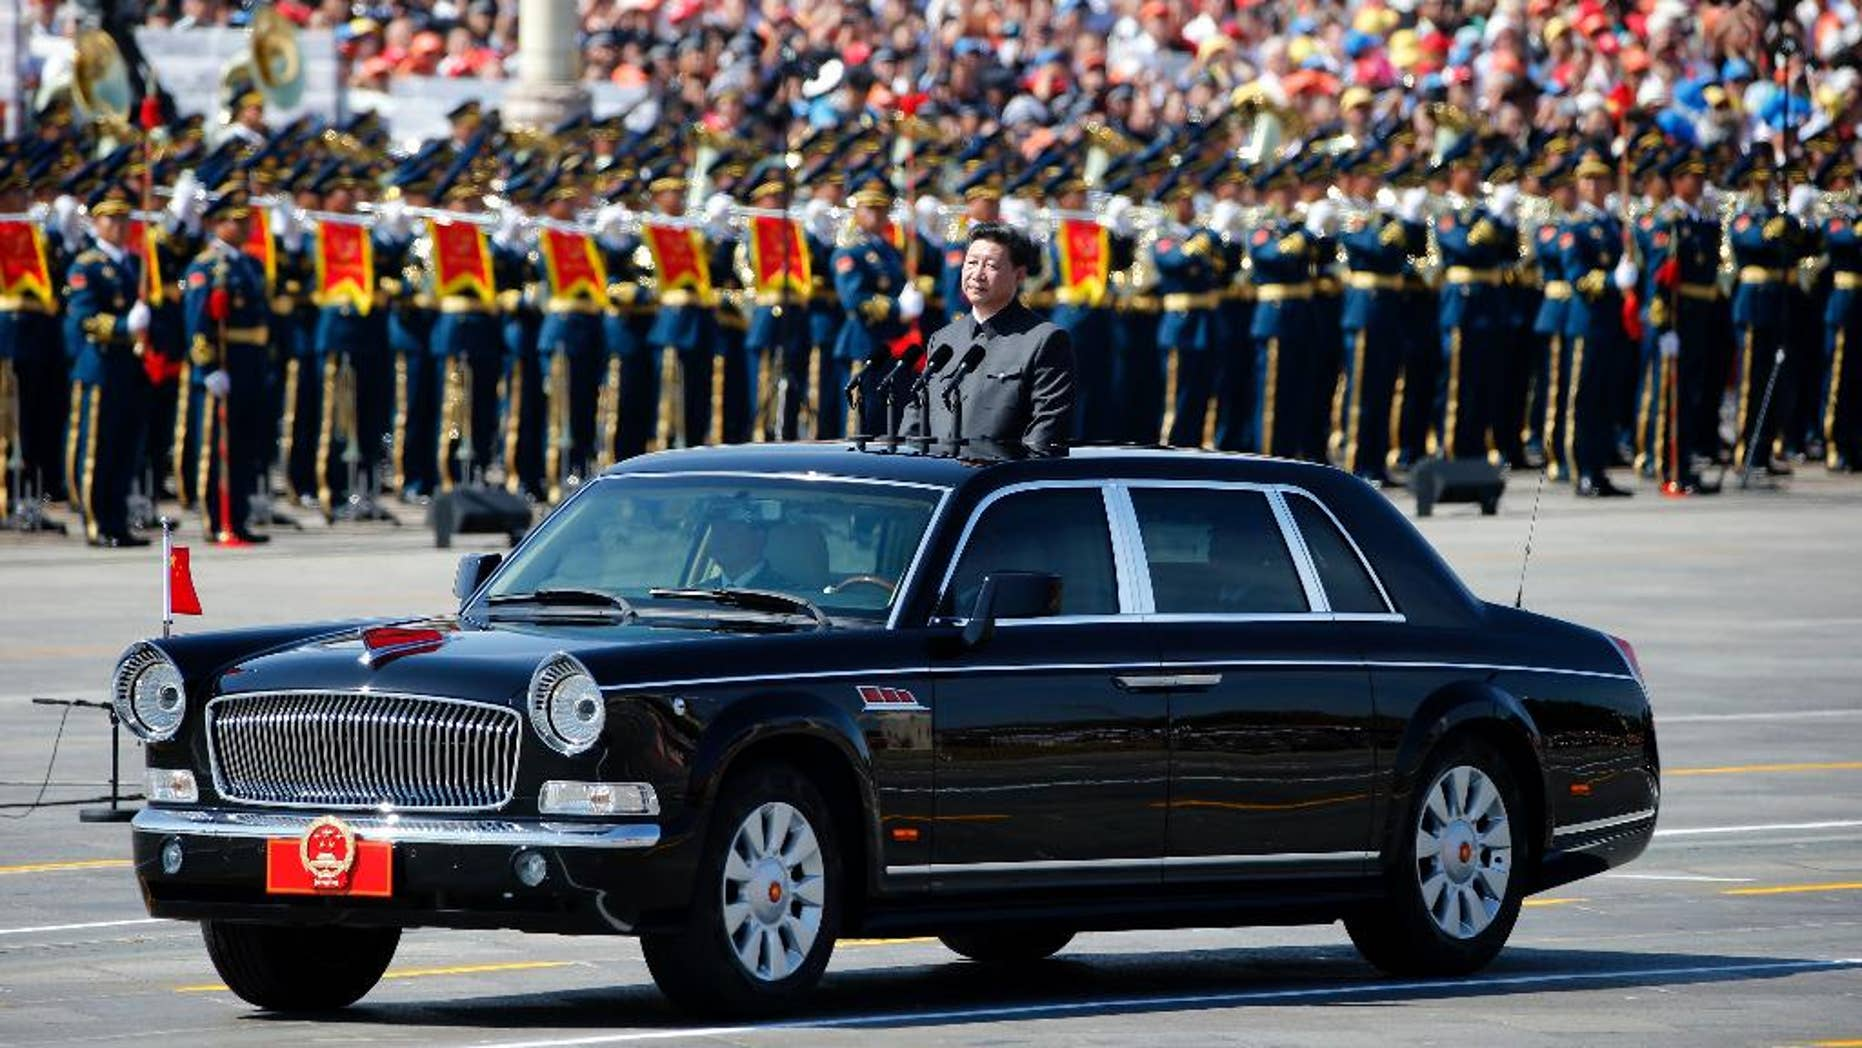 Chinese President Xi Jinping stands in a car to review the army during a parade commemorating the 70th anniversary of Japan's surrender during World War II held in front of Tiananmen Gate in Beijing, Thursday, Sept. 3, 2015. The spectacle involved more than 12,000 troops, 500 pieces of military hardware and 200 aircraft of various types, representing what military officials say is the Chinese military's most cutting-edge technology. (AP Photo/Ng Han Guan)